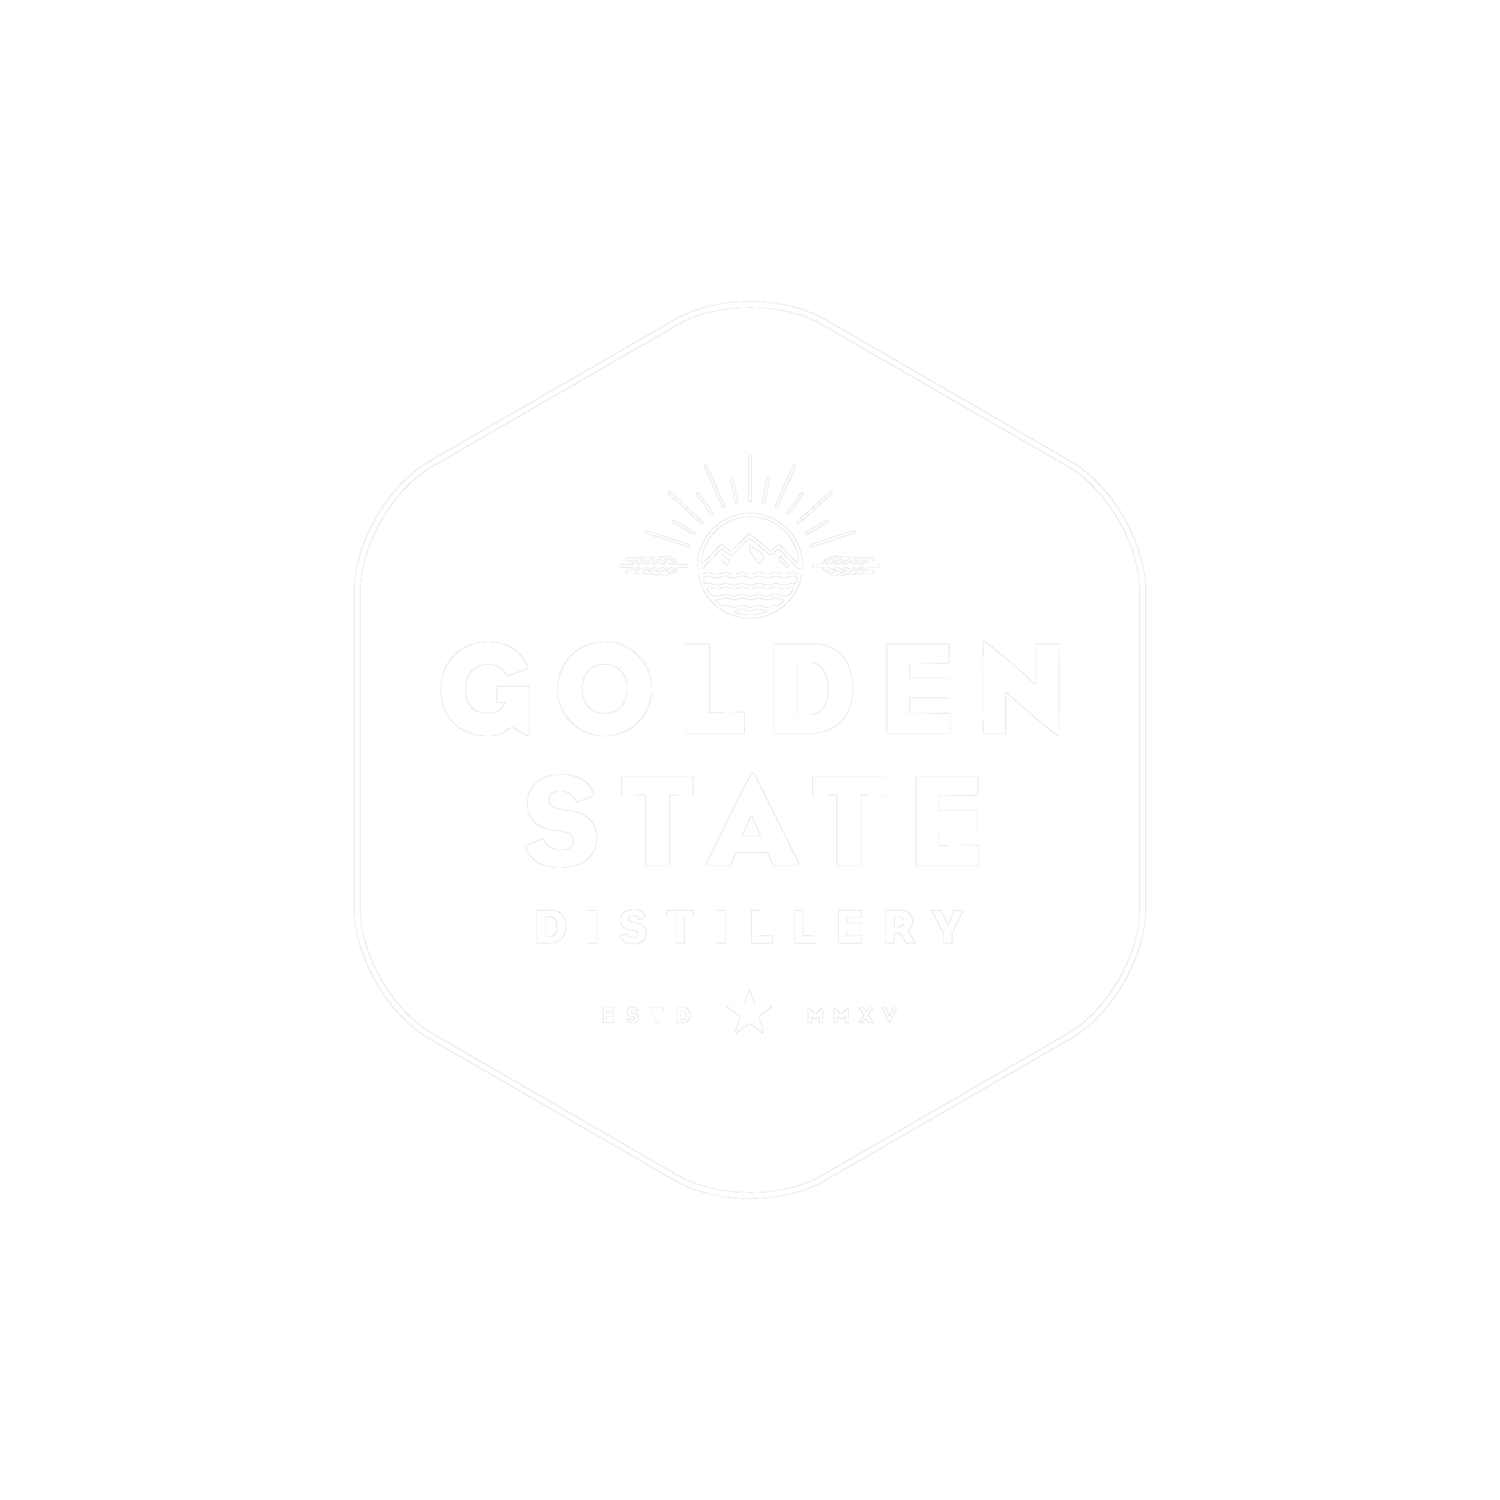 Golden State Distillery